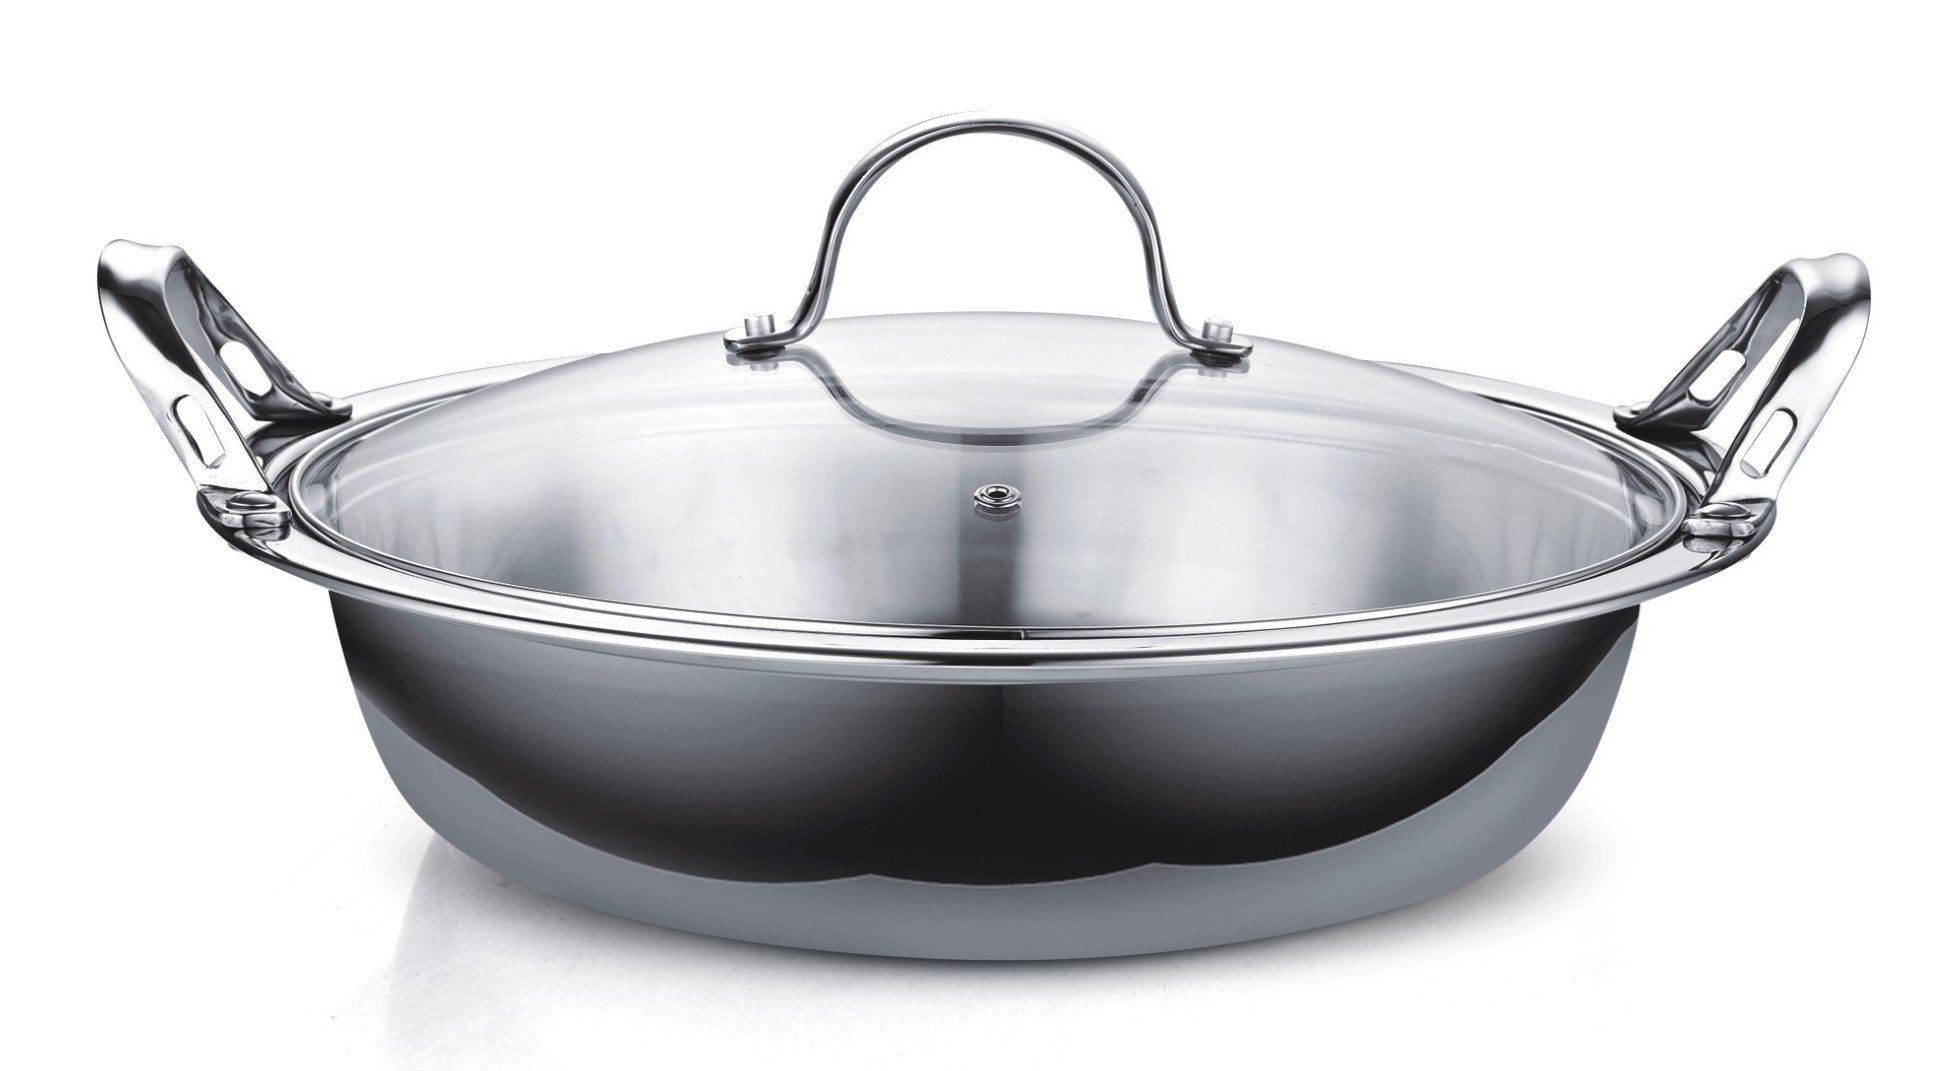 Cooks Standard NC-00378 Multi-Ply Clad Stainless Steel Tagine with 2 Handle and Extra Glass Lid, 4.5-Quart by Cooks Standard (Image #3)